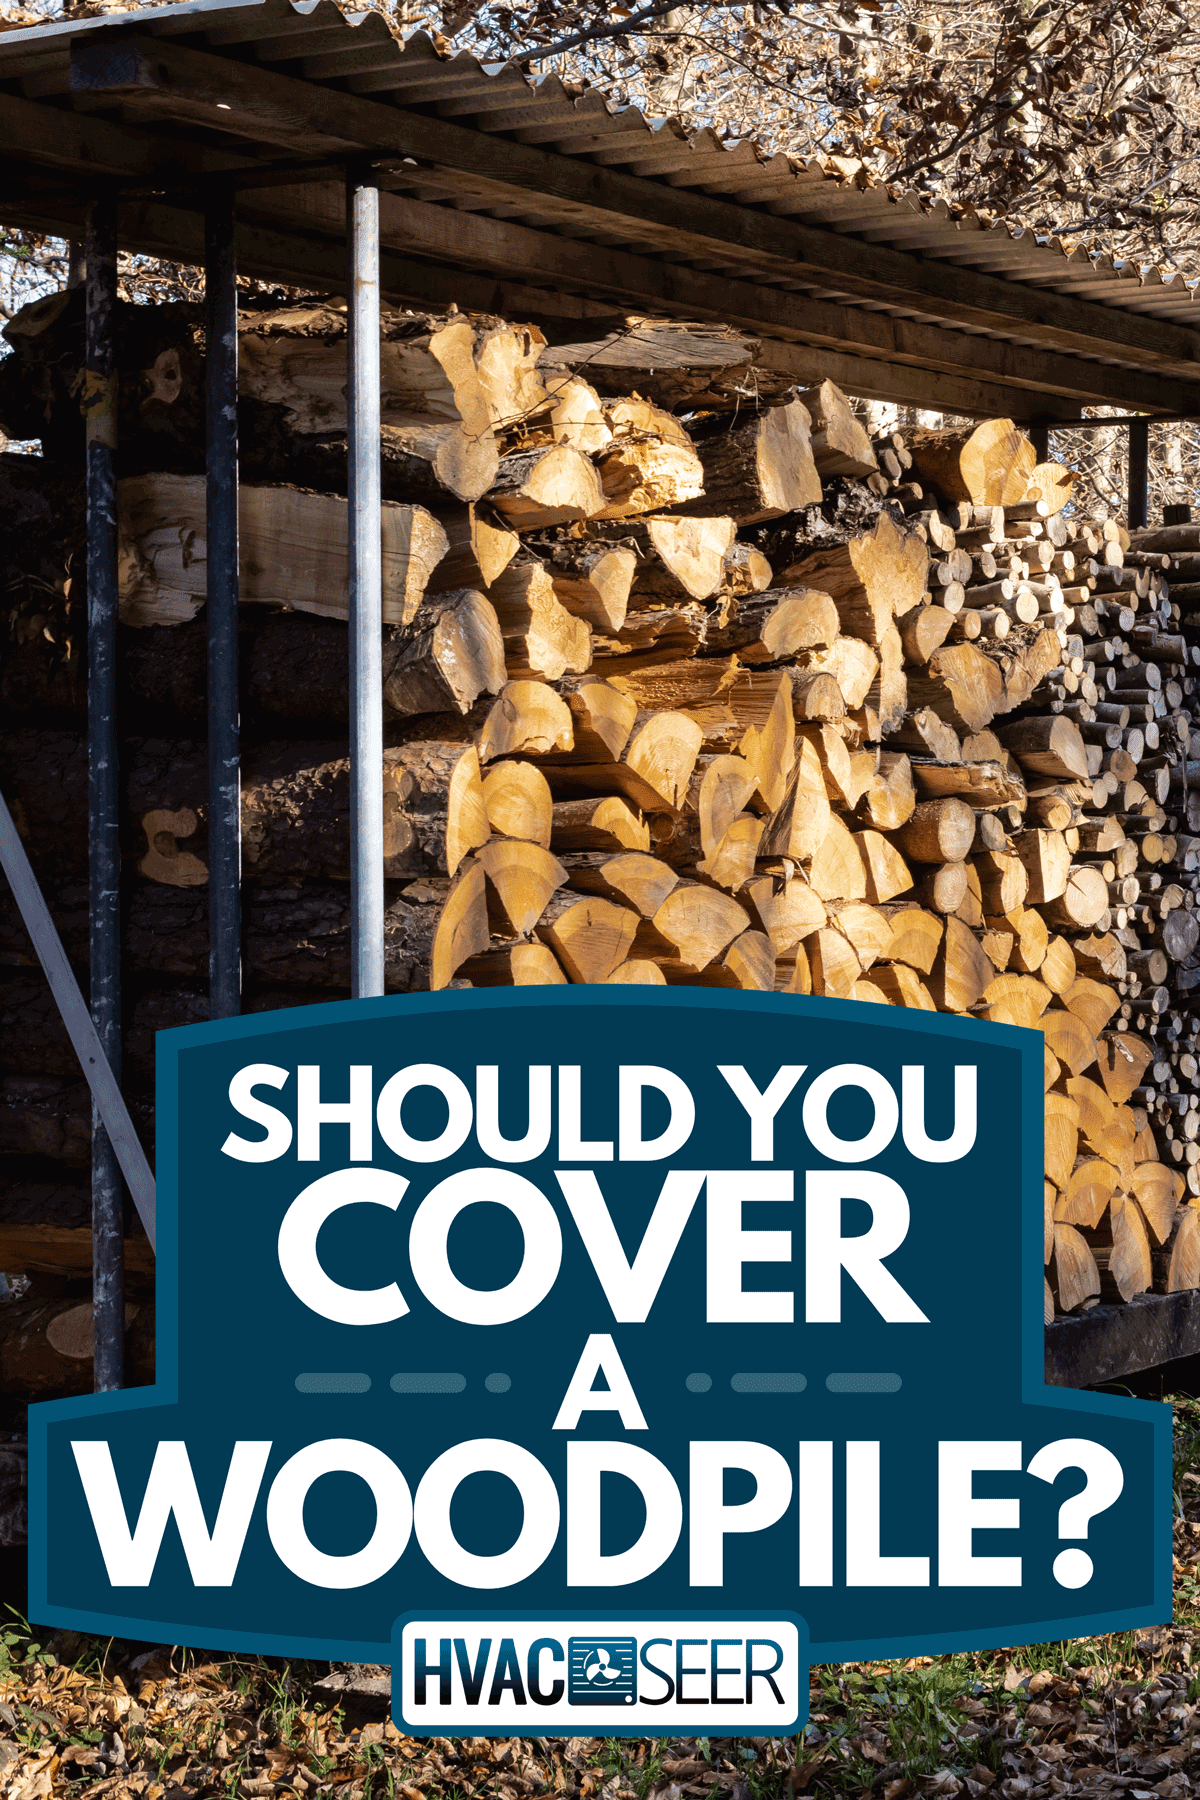 A covered wood pile with firewood for winter in sunny autumn forest, Should You Cover A Woodpile?